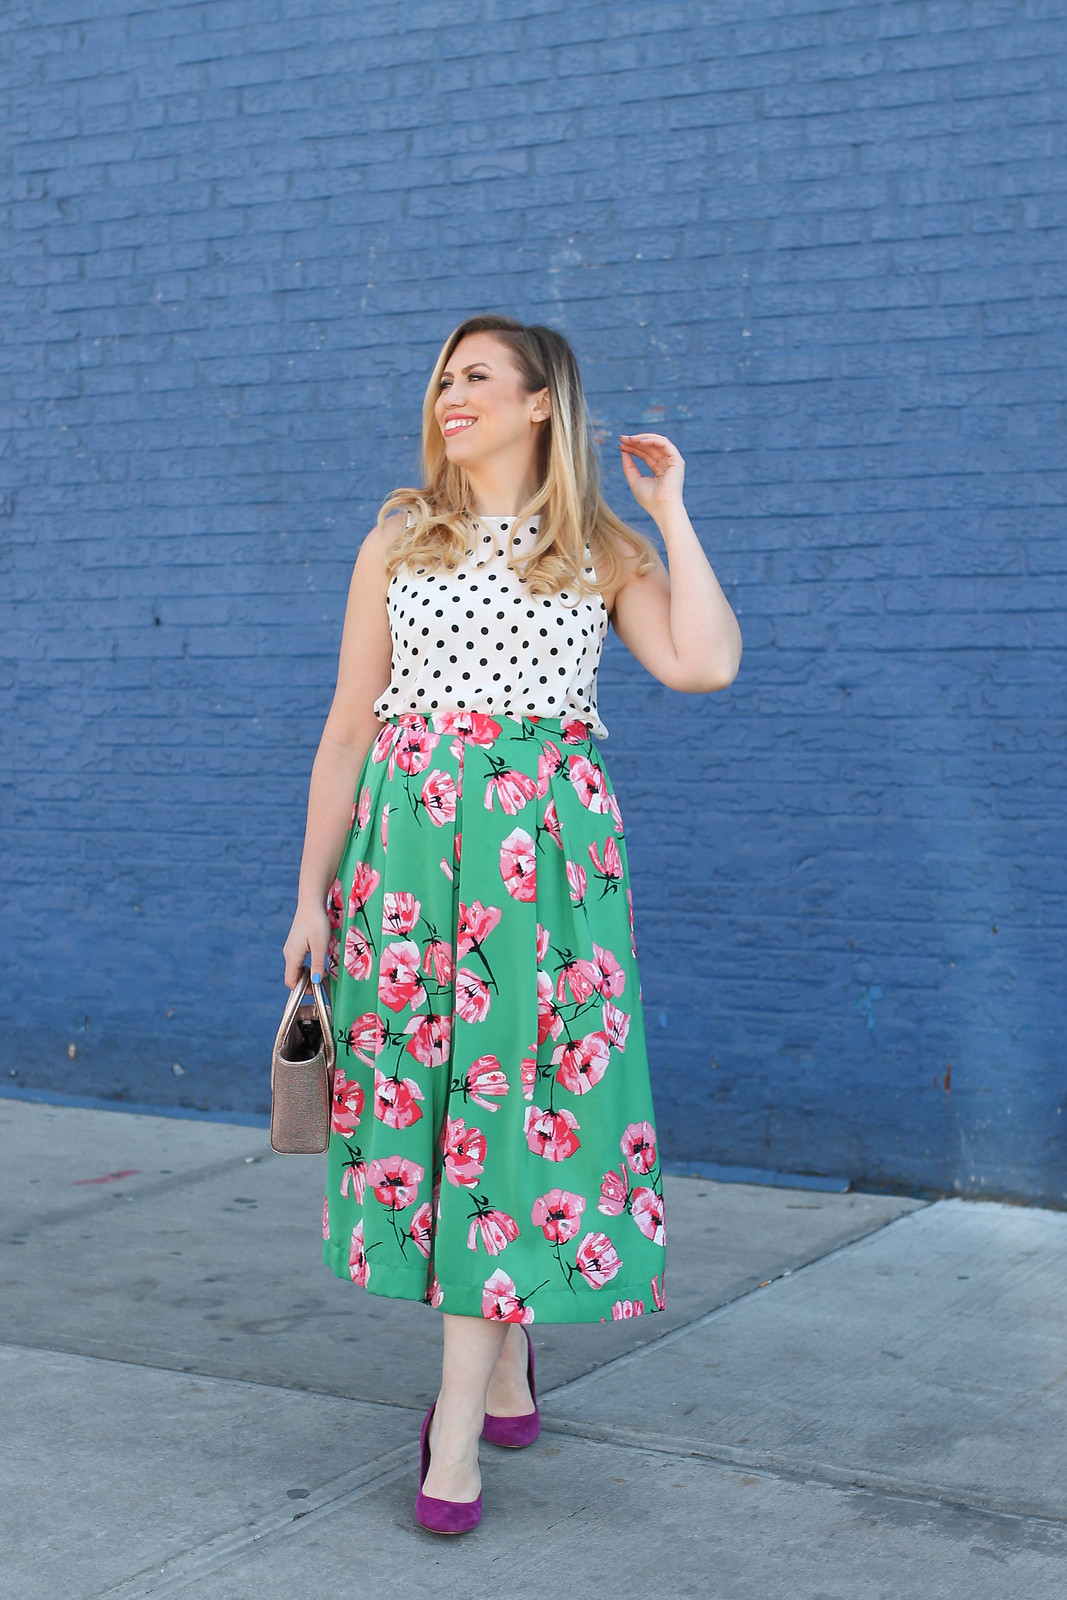 Colorful Spring Outfit Polka Dot Tank Green Pink Floral Midi Skirt Blue Brick Wall Jackie Giardina Living After Midnite Fashion Style Blogger